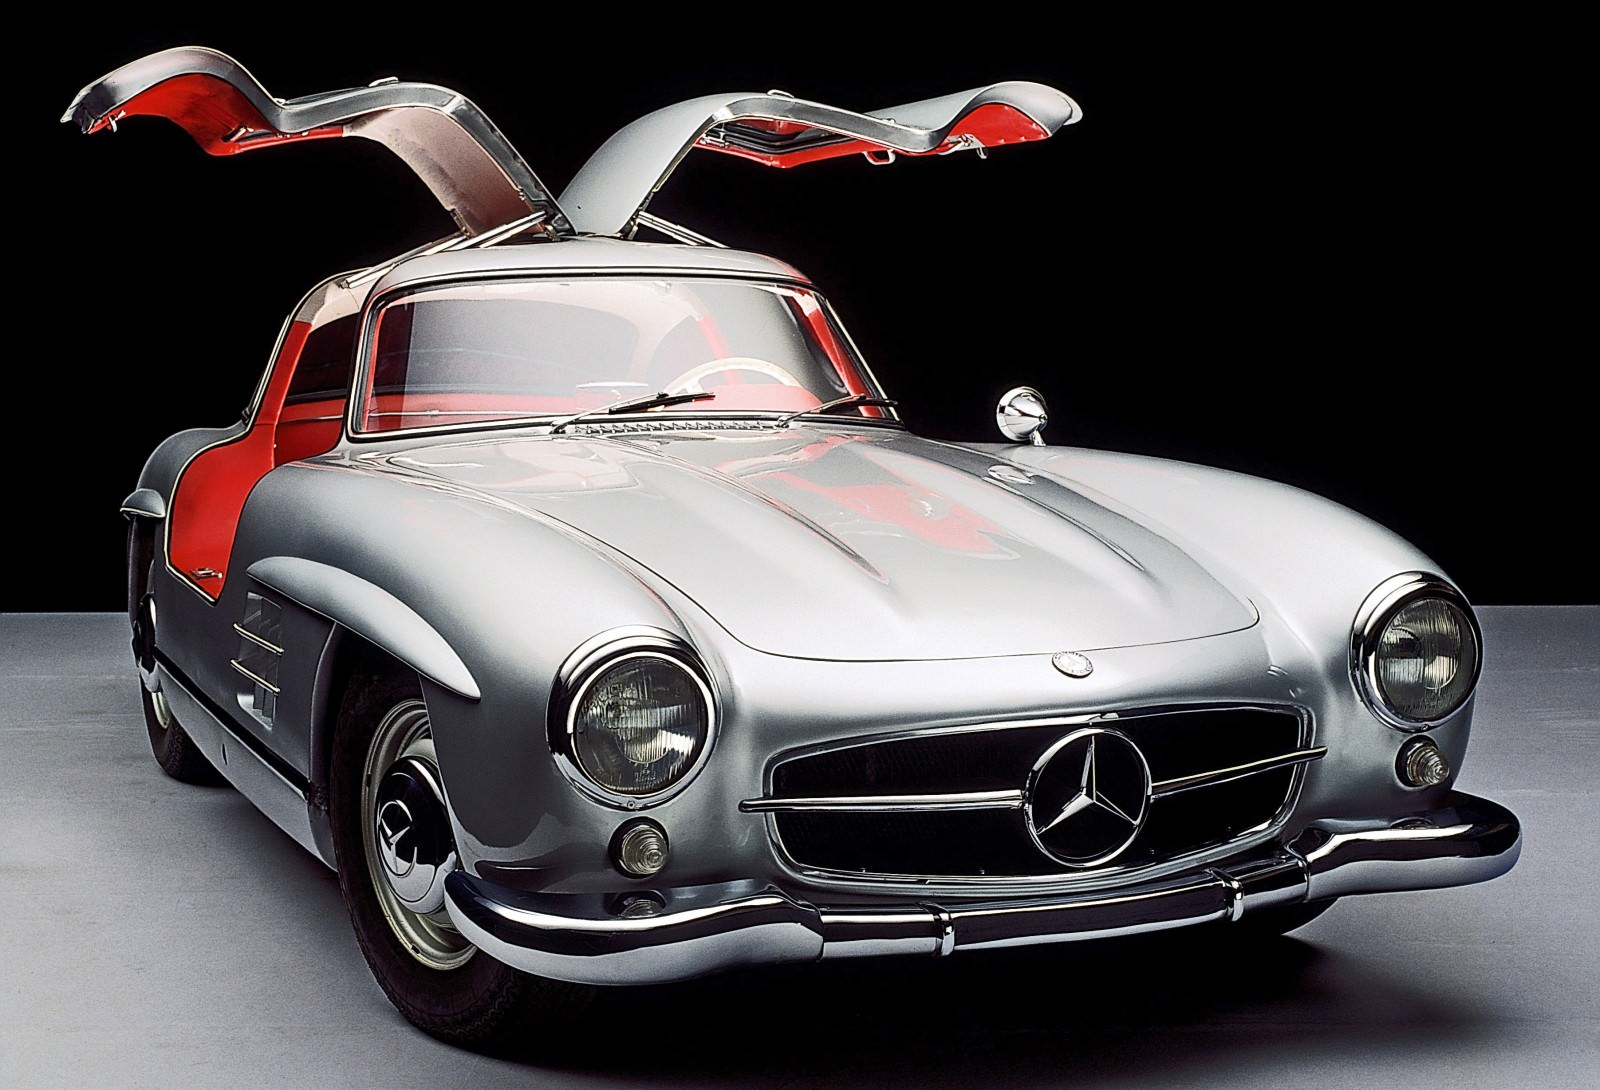 Mercedes benz gullwing supercar evolution for Mercedes benz cars images